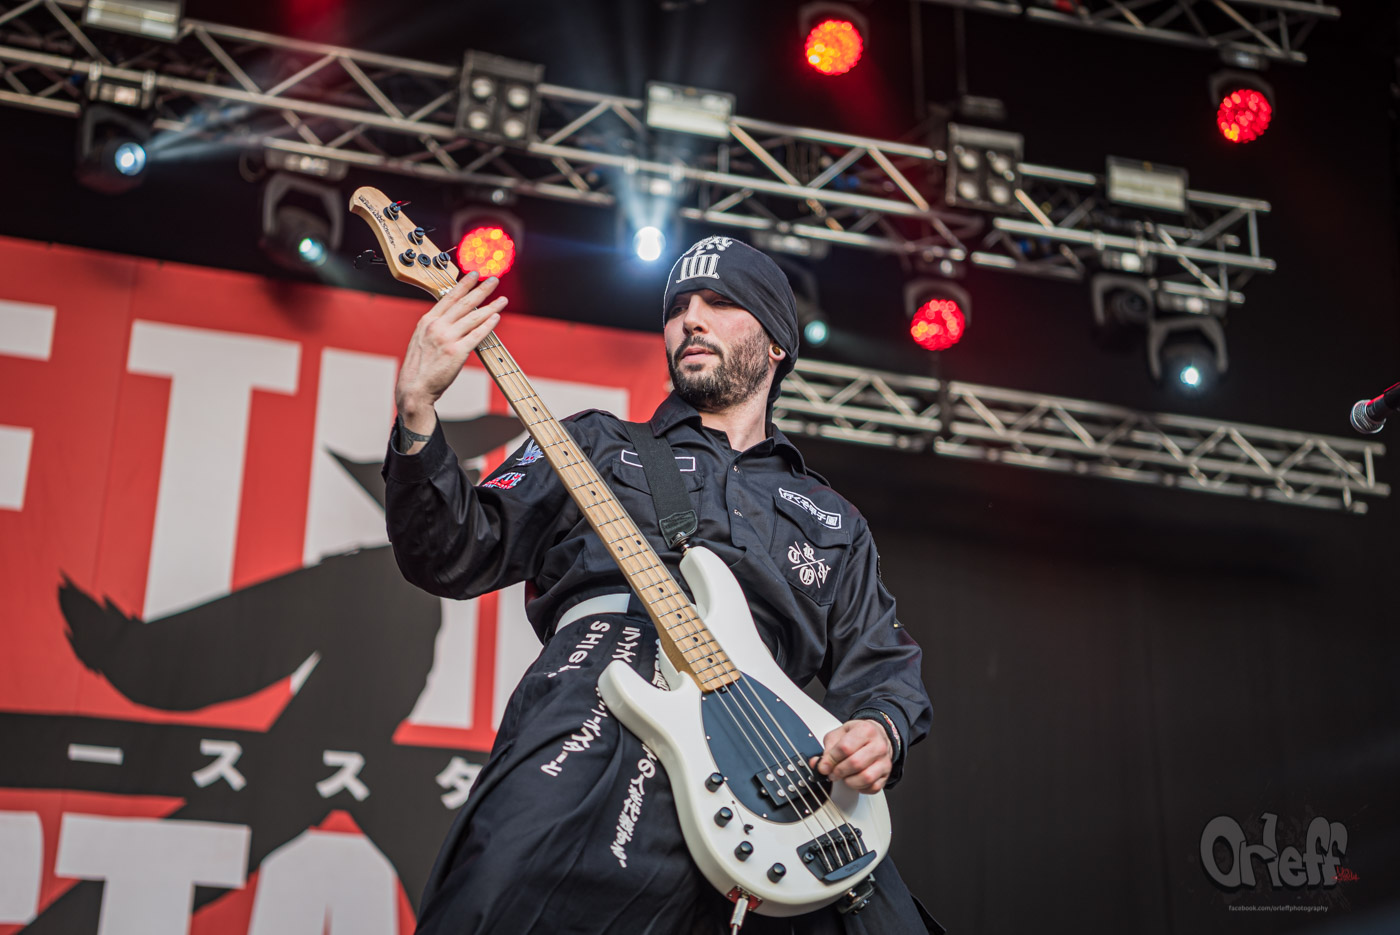 Rise Of The Northstar @ MetalDays Festival 2019